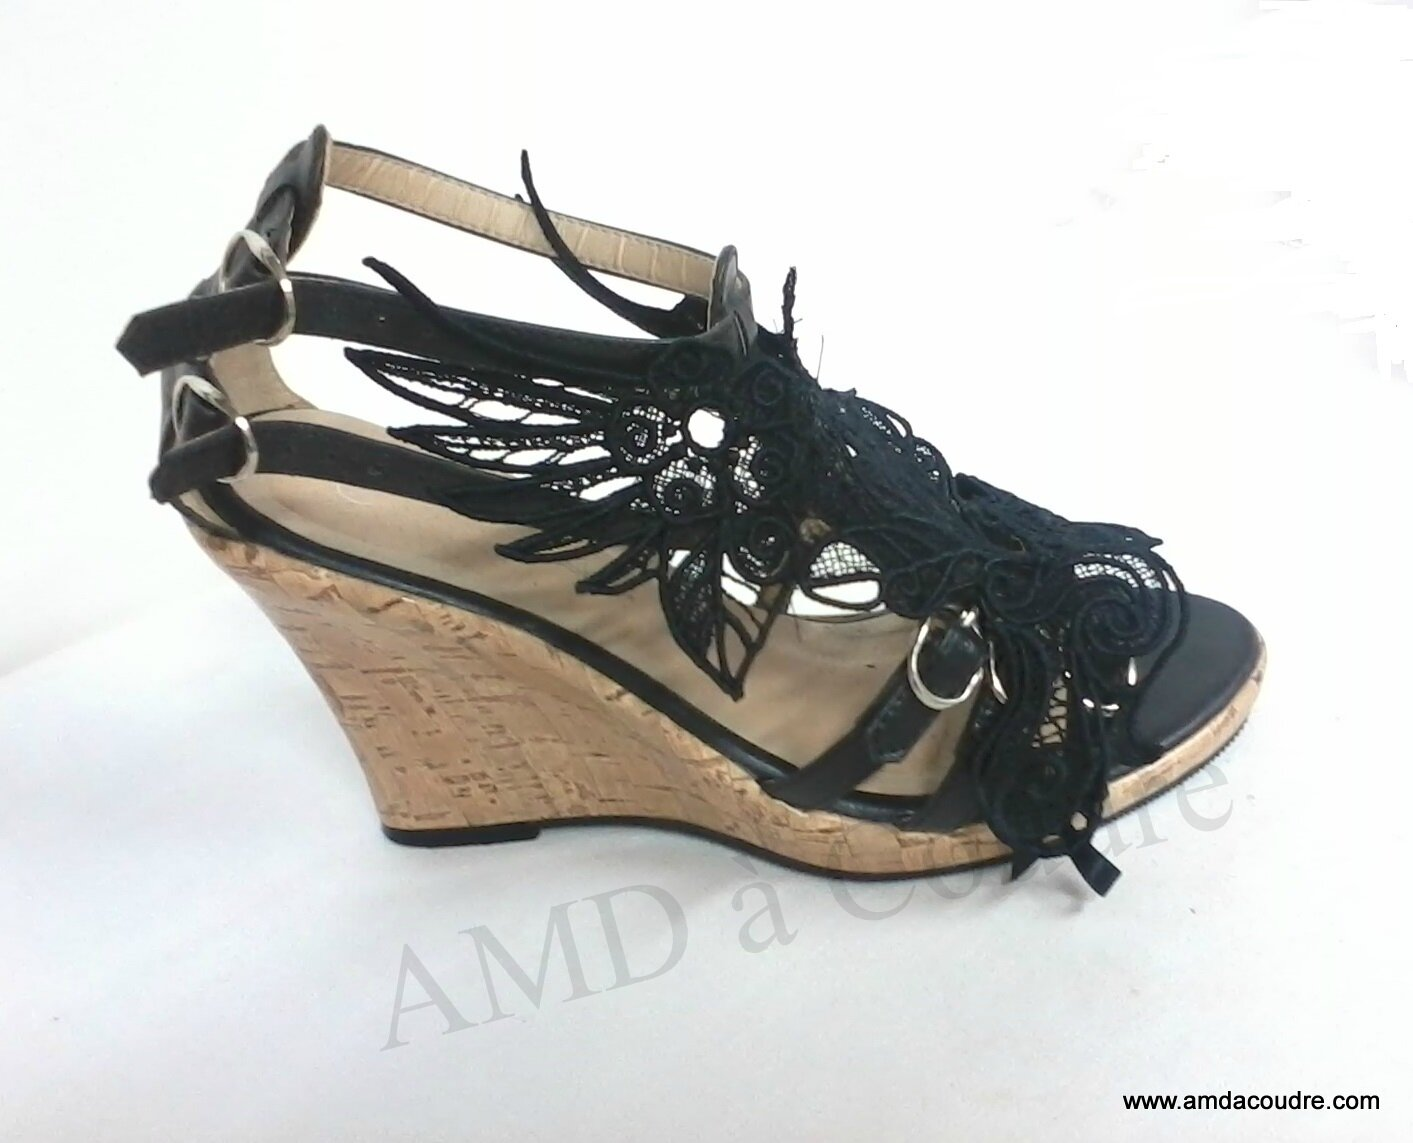 broderie chaussure amd a coudre